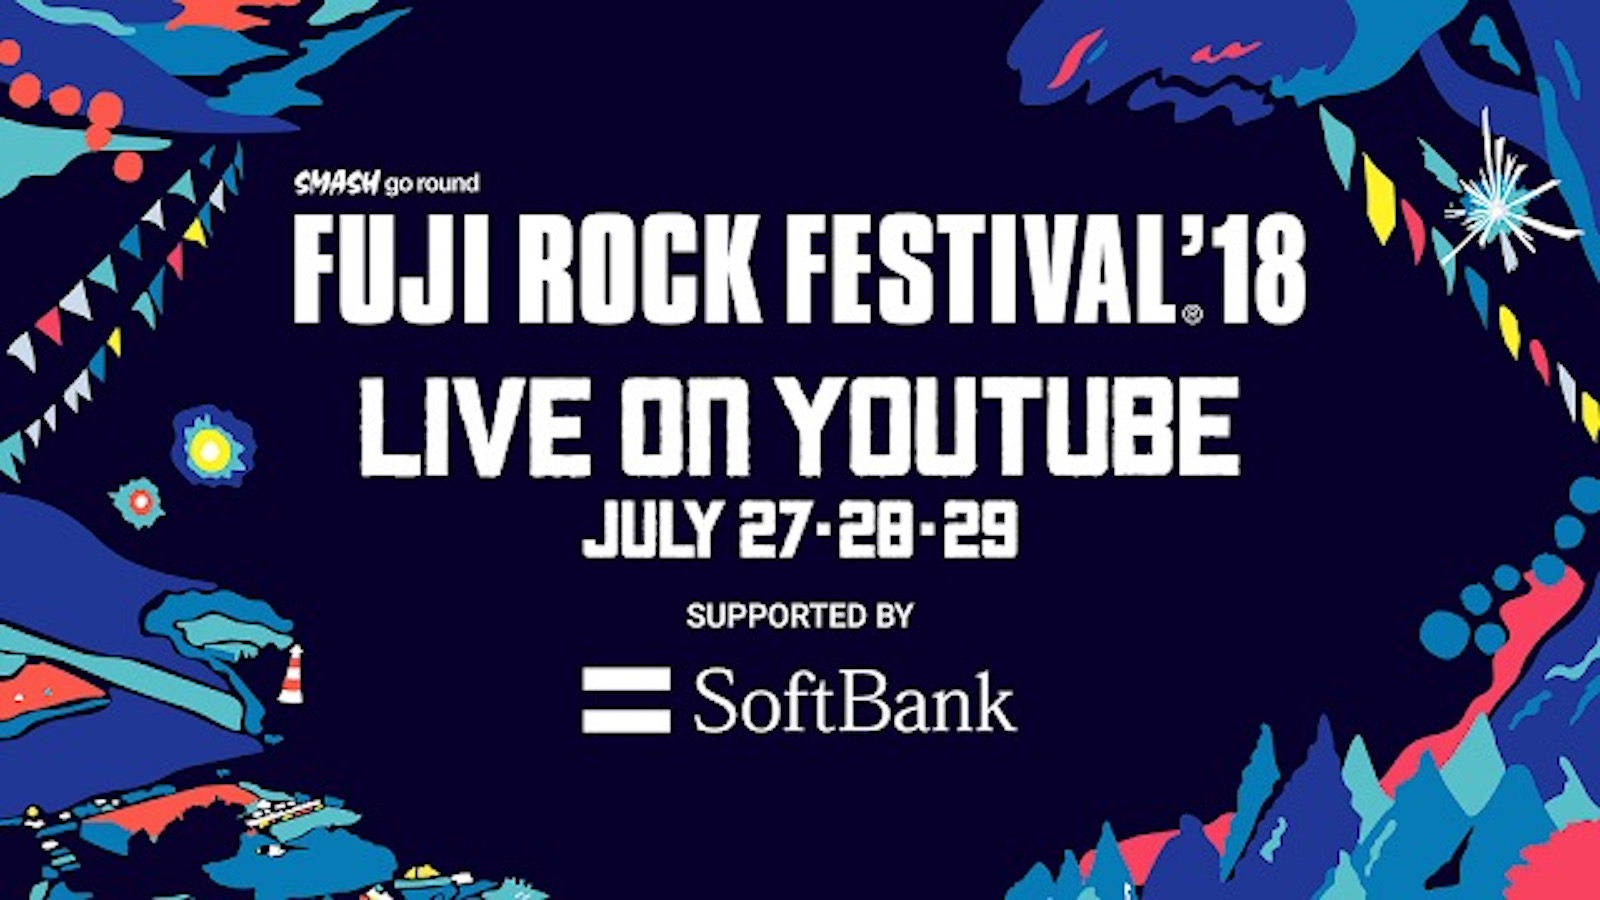 Fuji Rock Festival 2018 YouTube Live